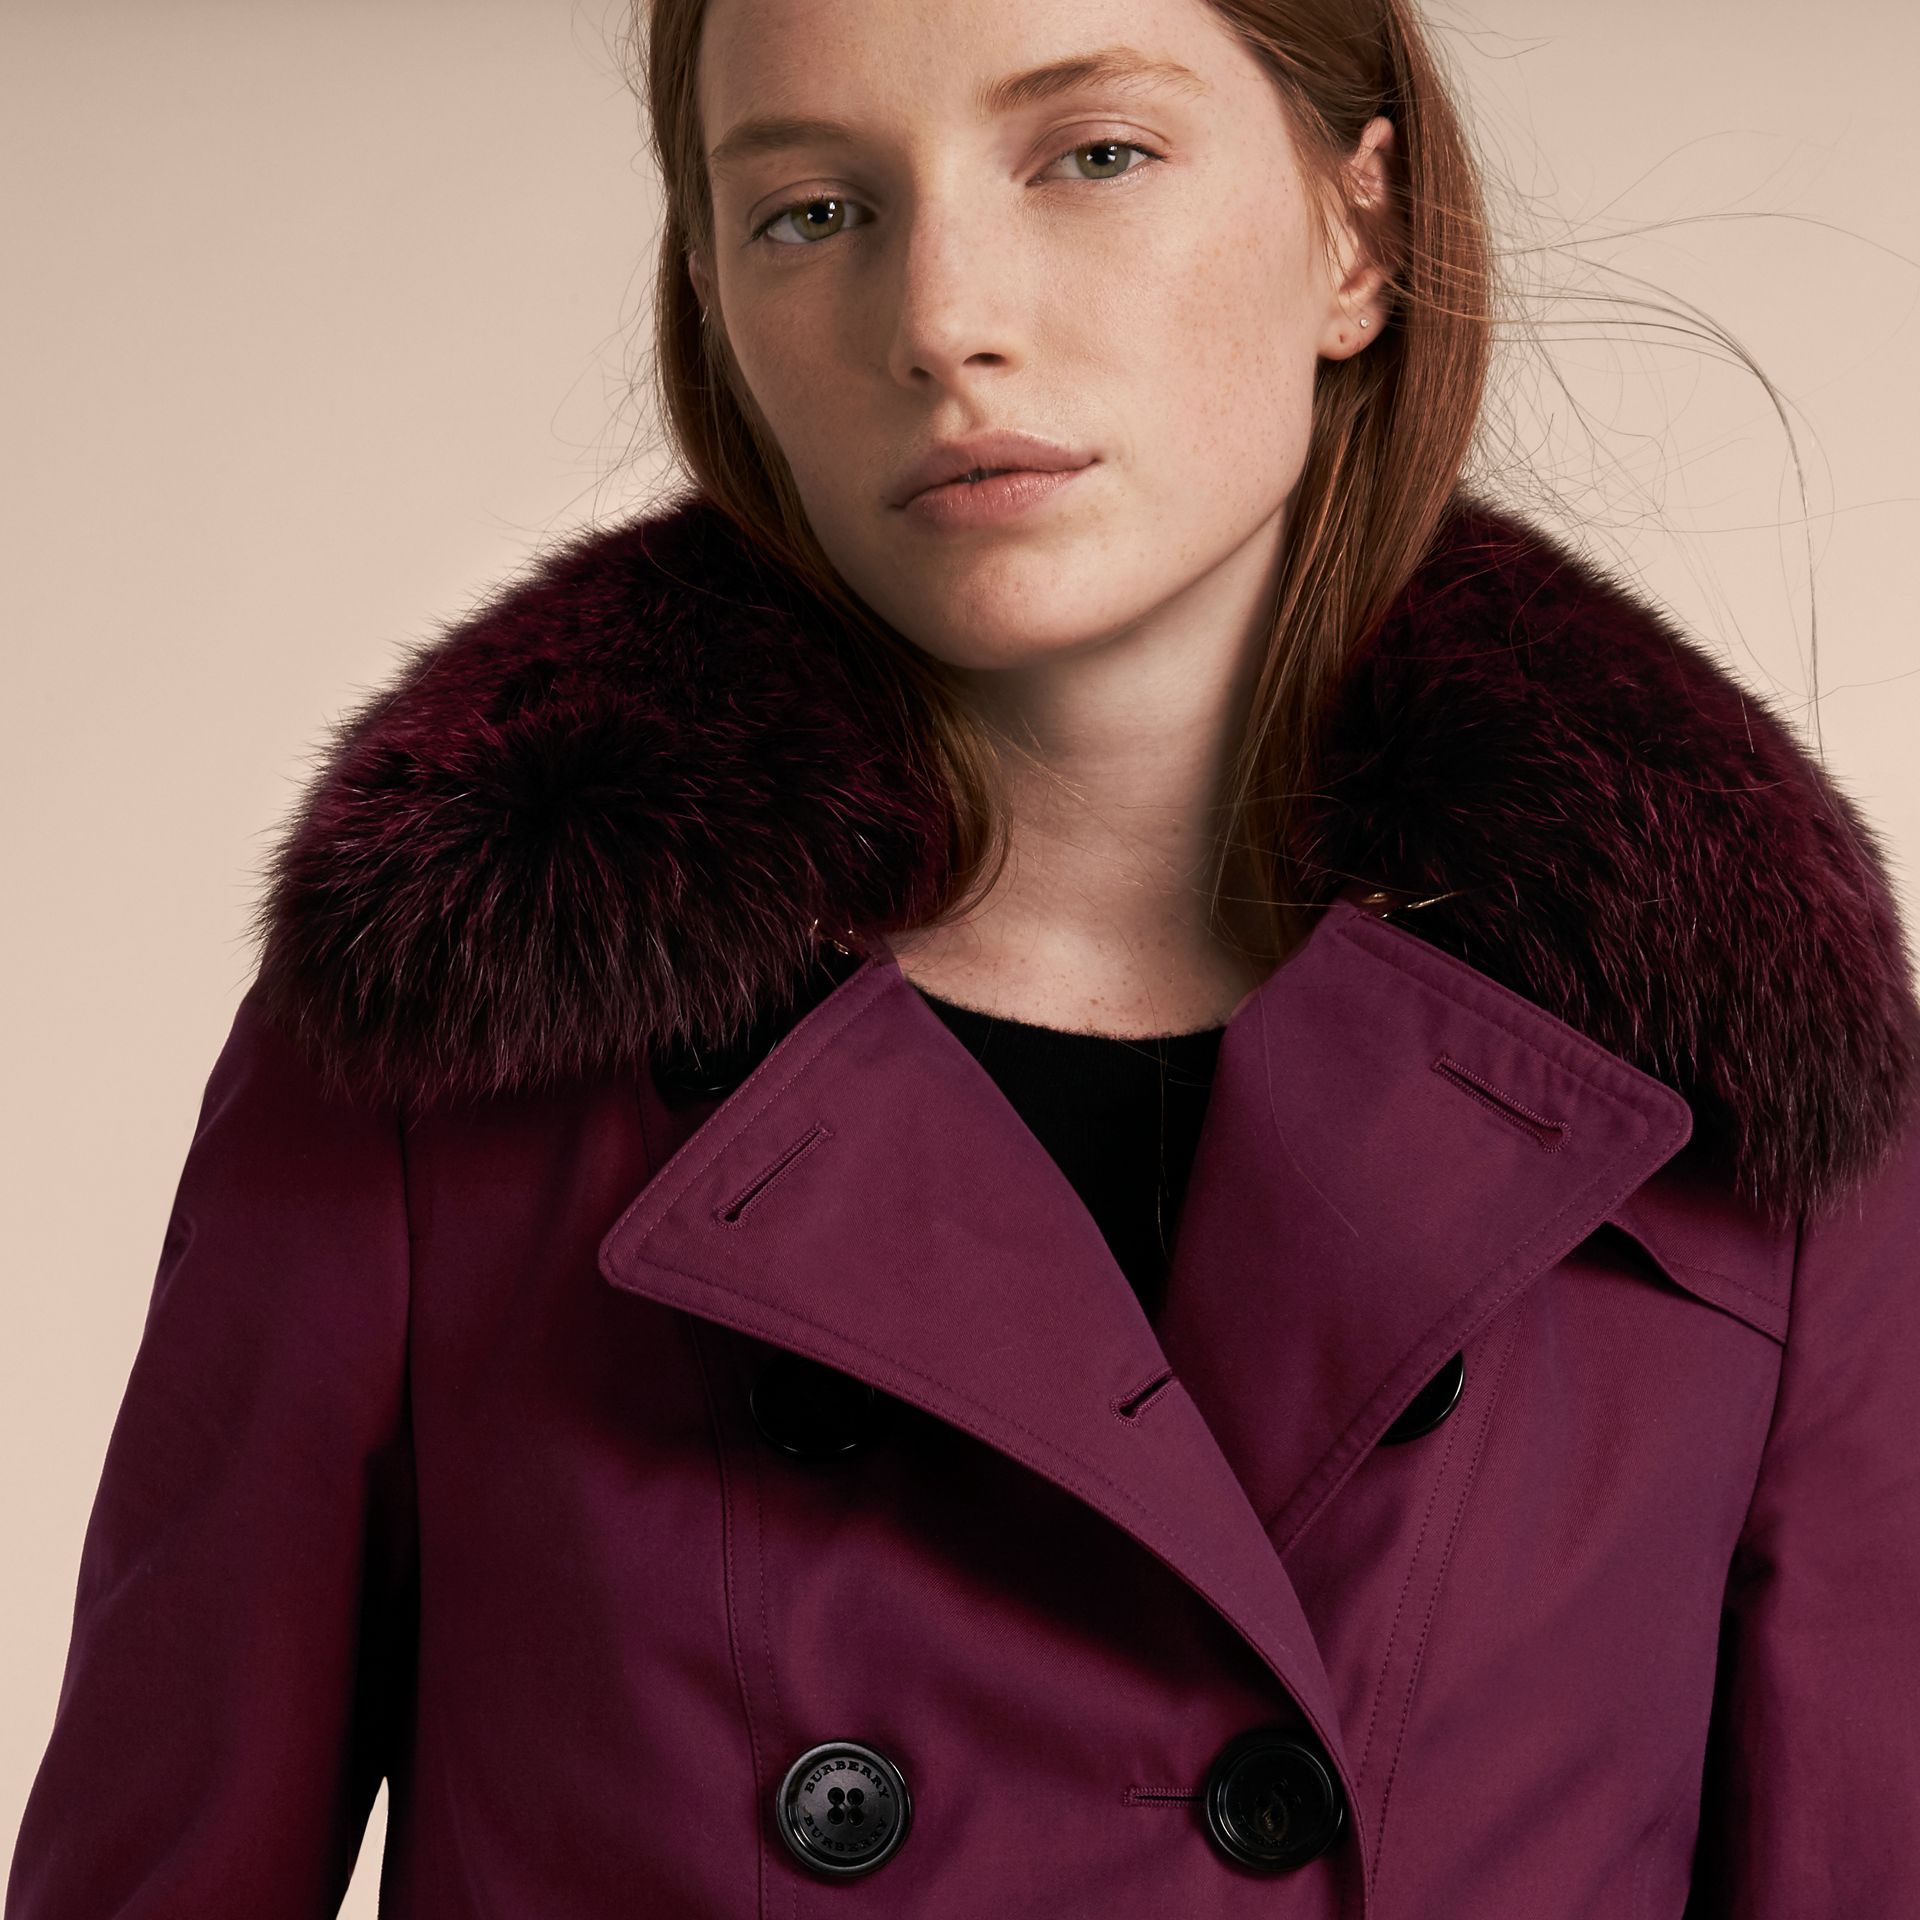 Crimson Cotton Gabardine Trench Coat with Detachable Fur Trim Crimson - gallery image 5